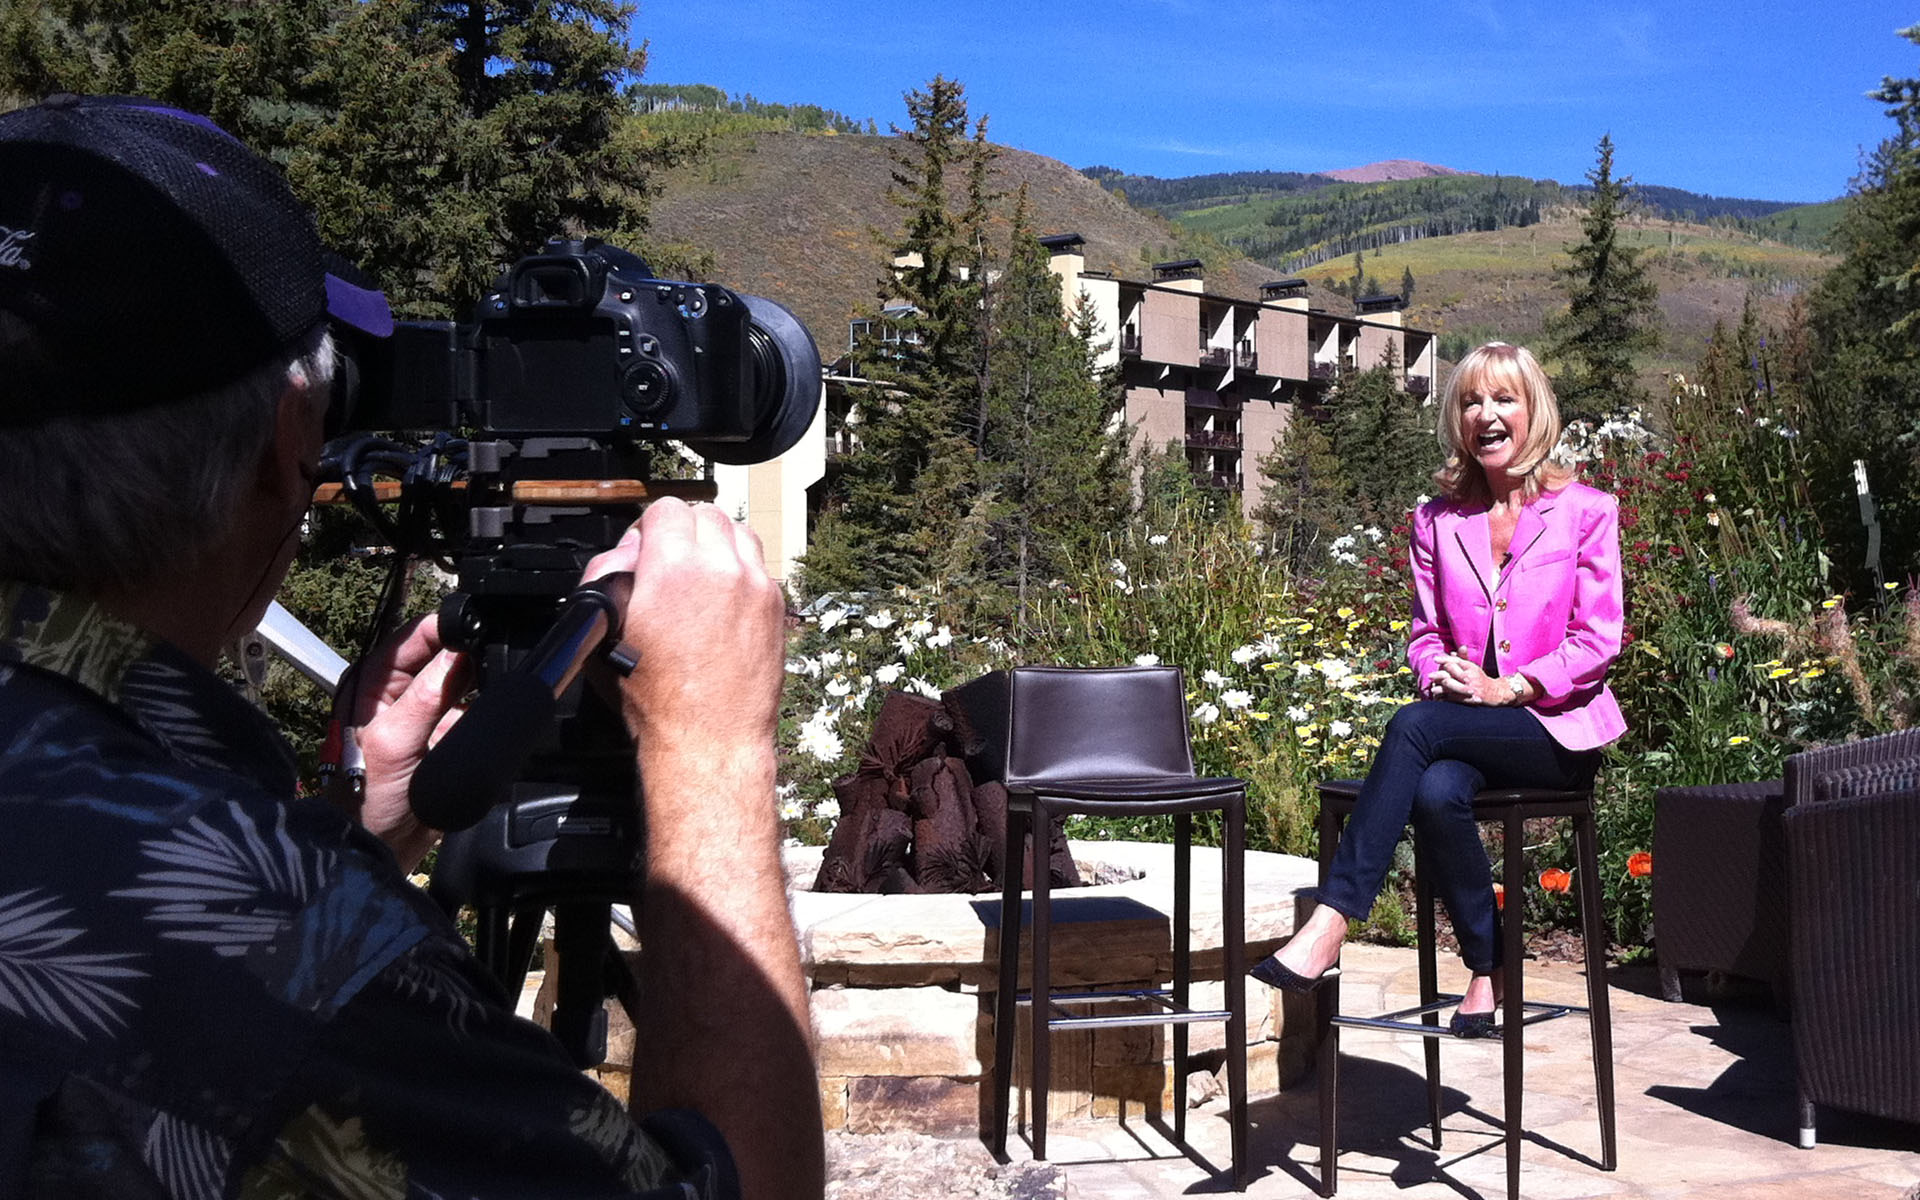 Corporate sales video for Executive Retreats in Vail, CO